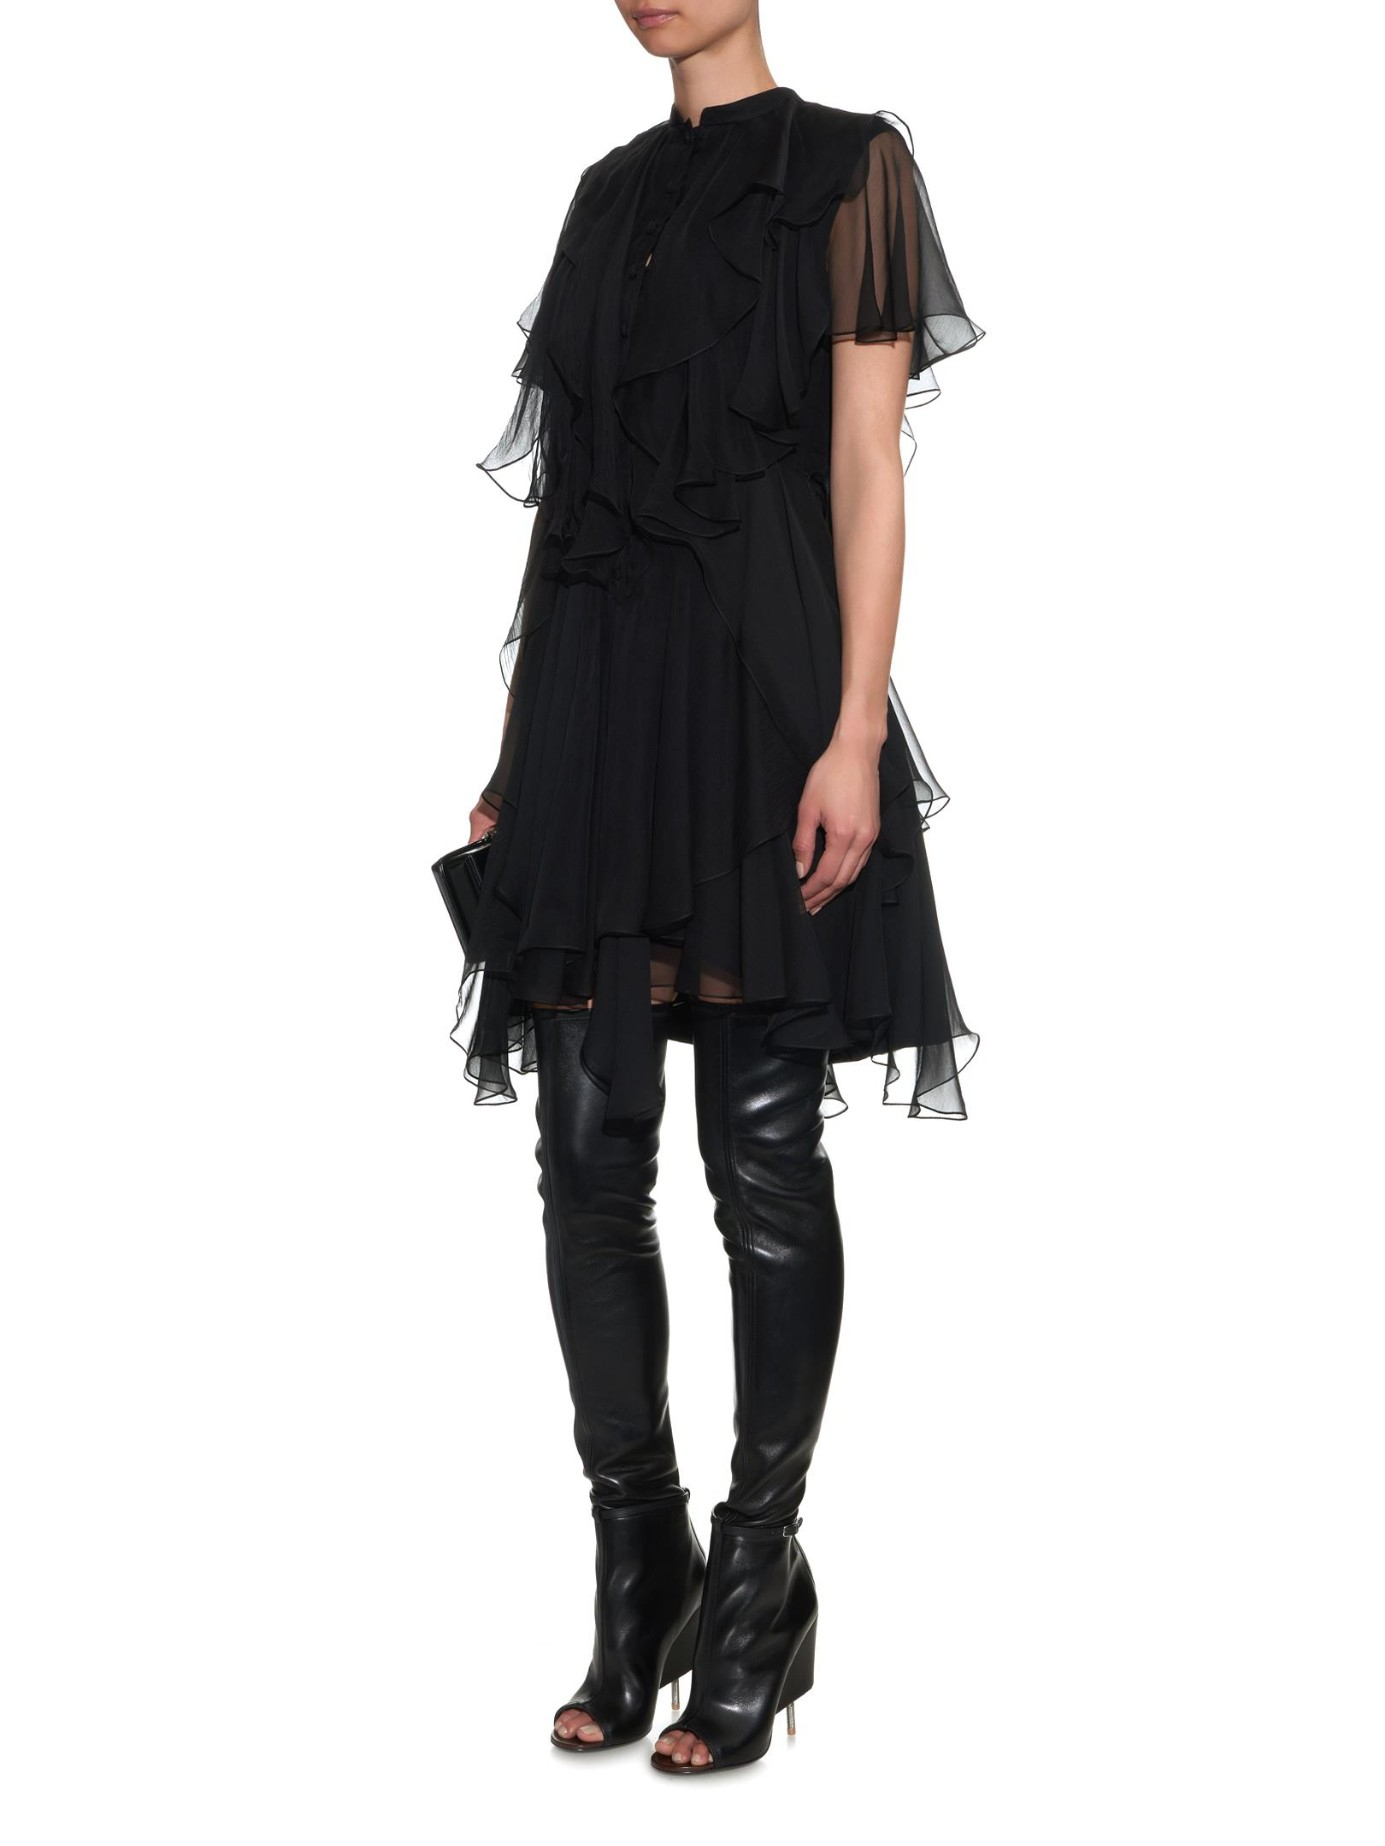 Lyst - Givenchy Narlia Peep-Toe Over-The-Knee Boots in Black b2be82265